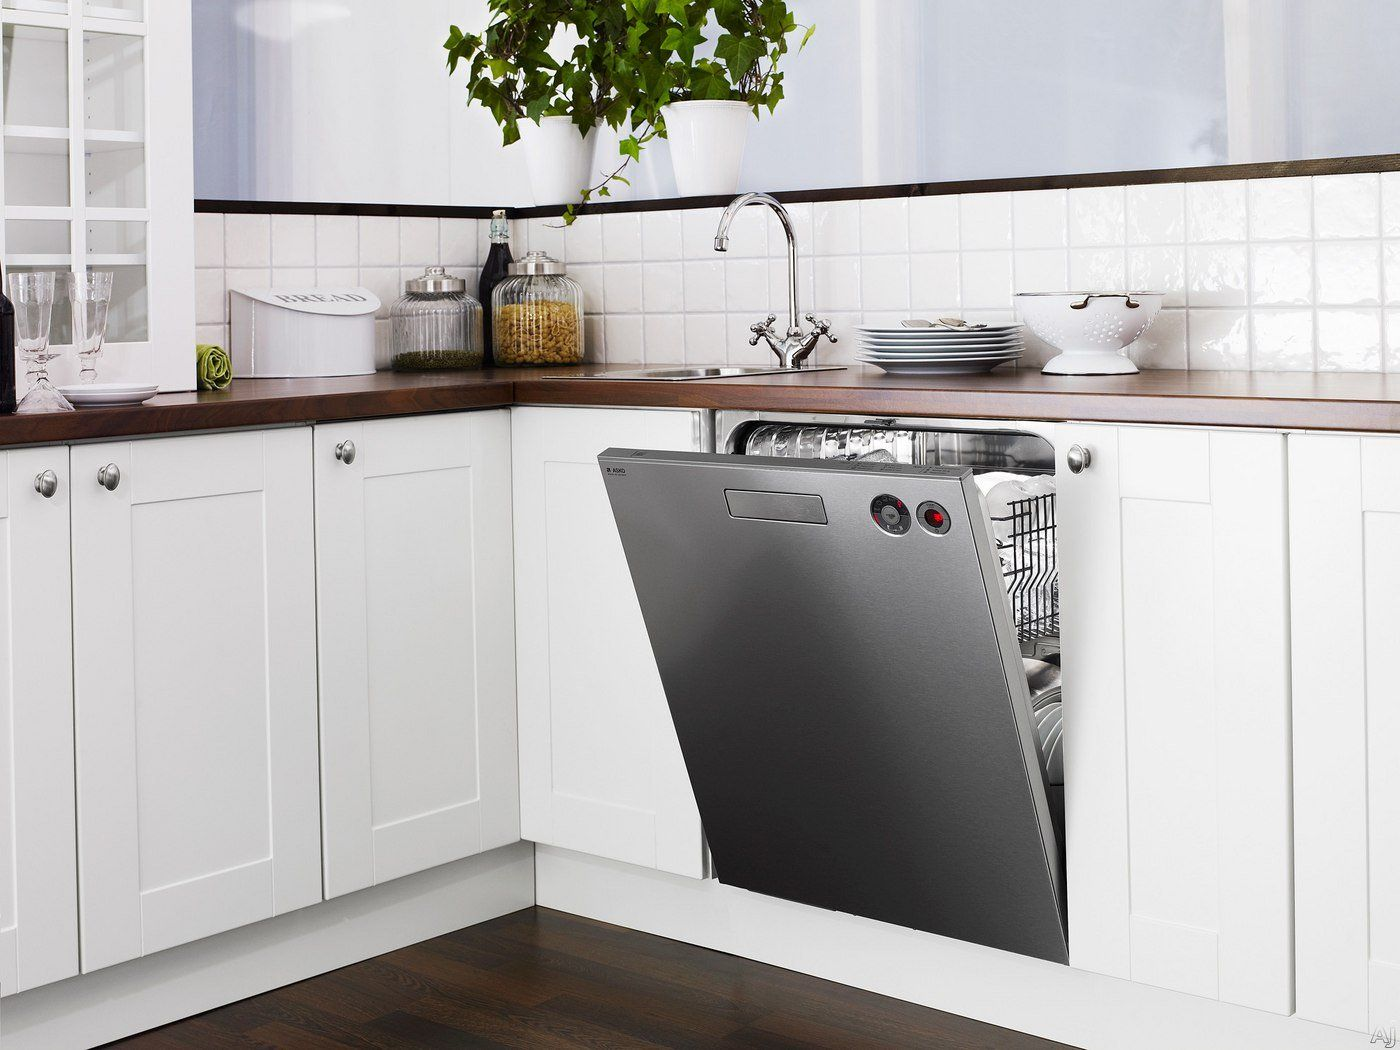 Most Reliable Dishwashers for 2020 (Reviews / Ratings) in